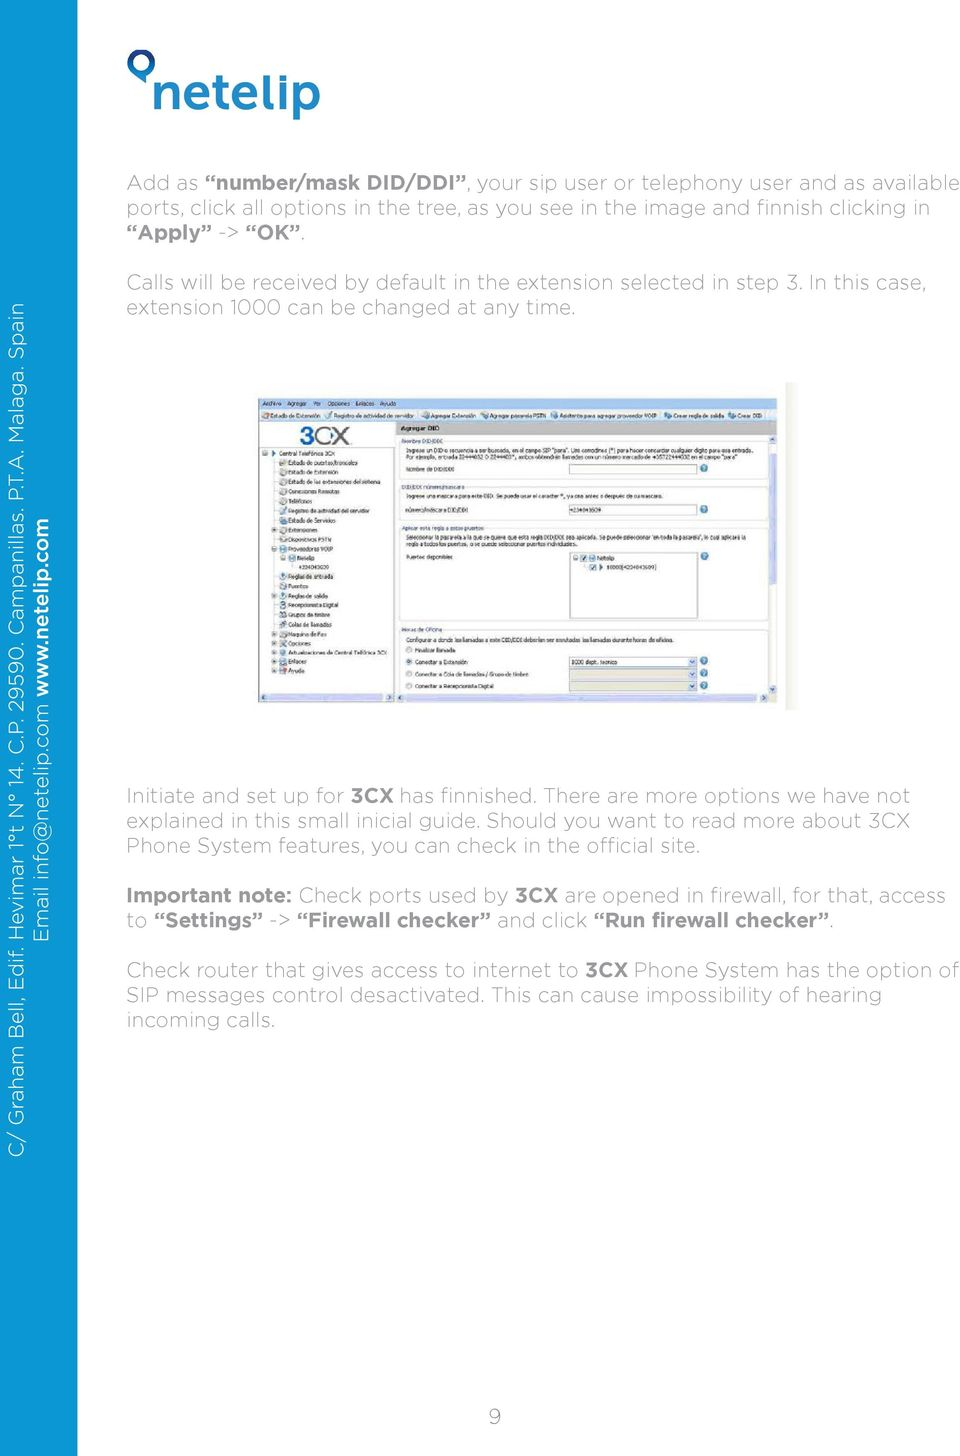 Configure your 3CX in our IP telephone service  - PDF